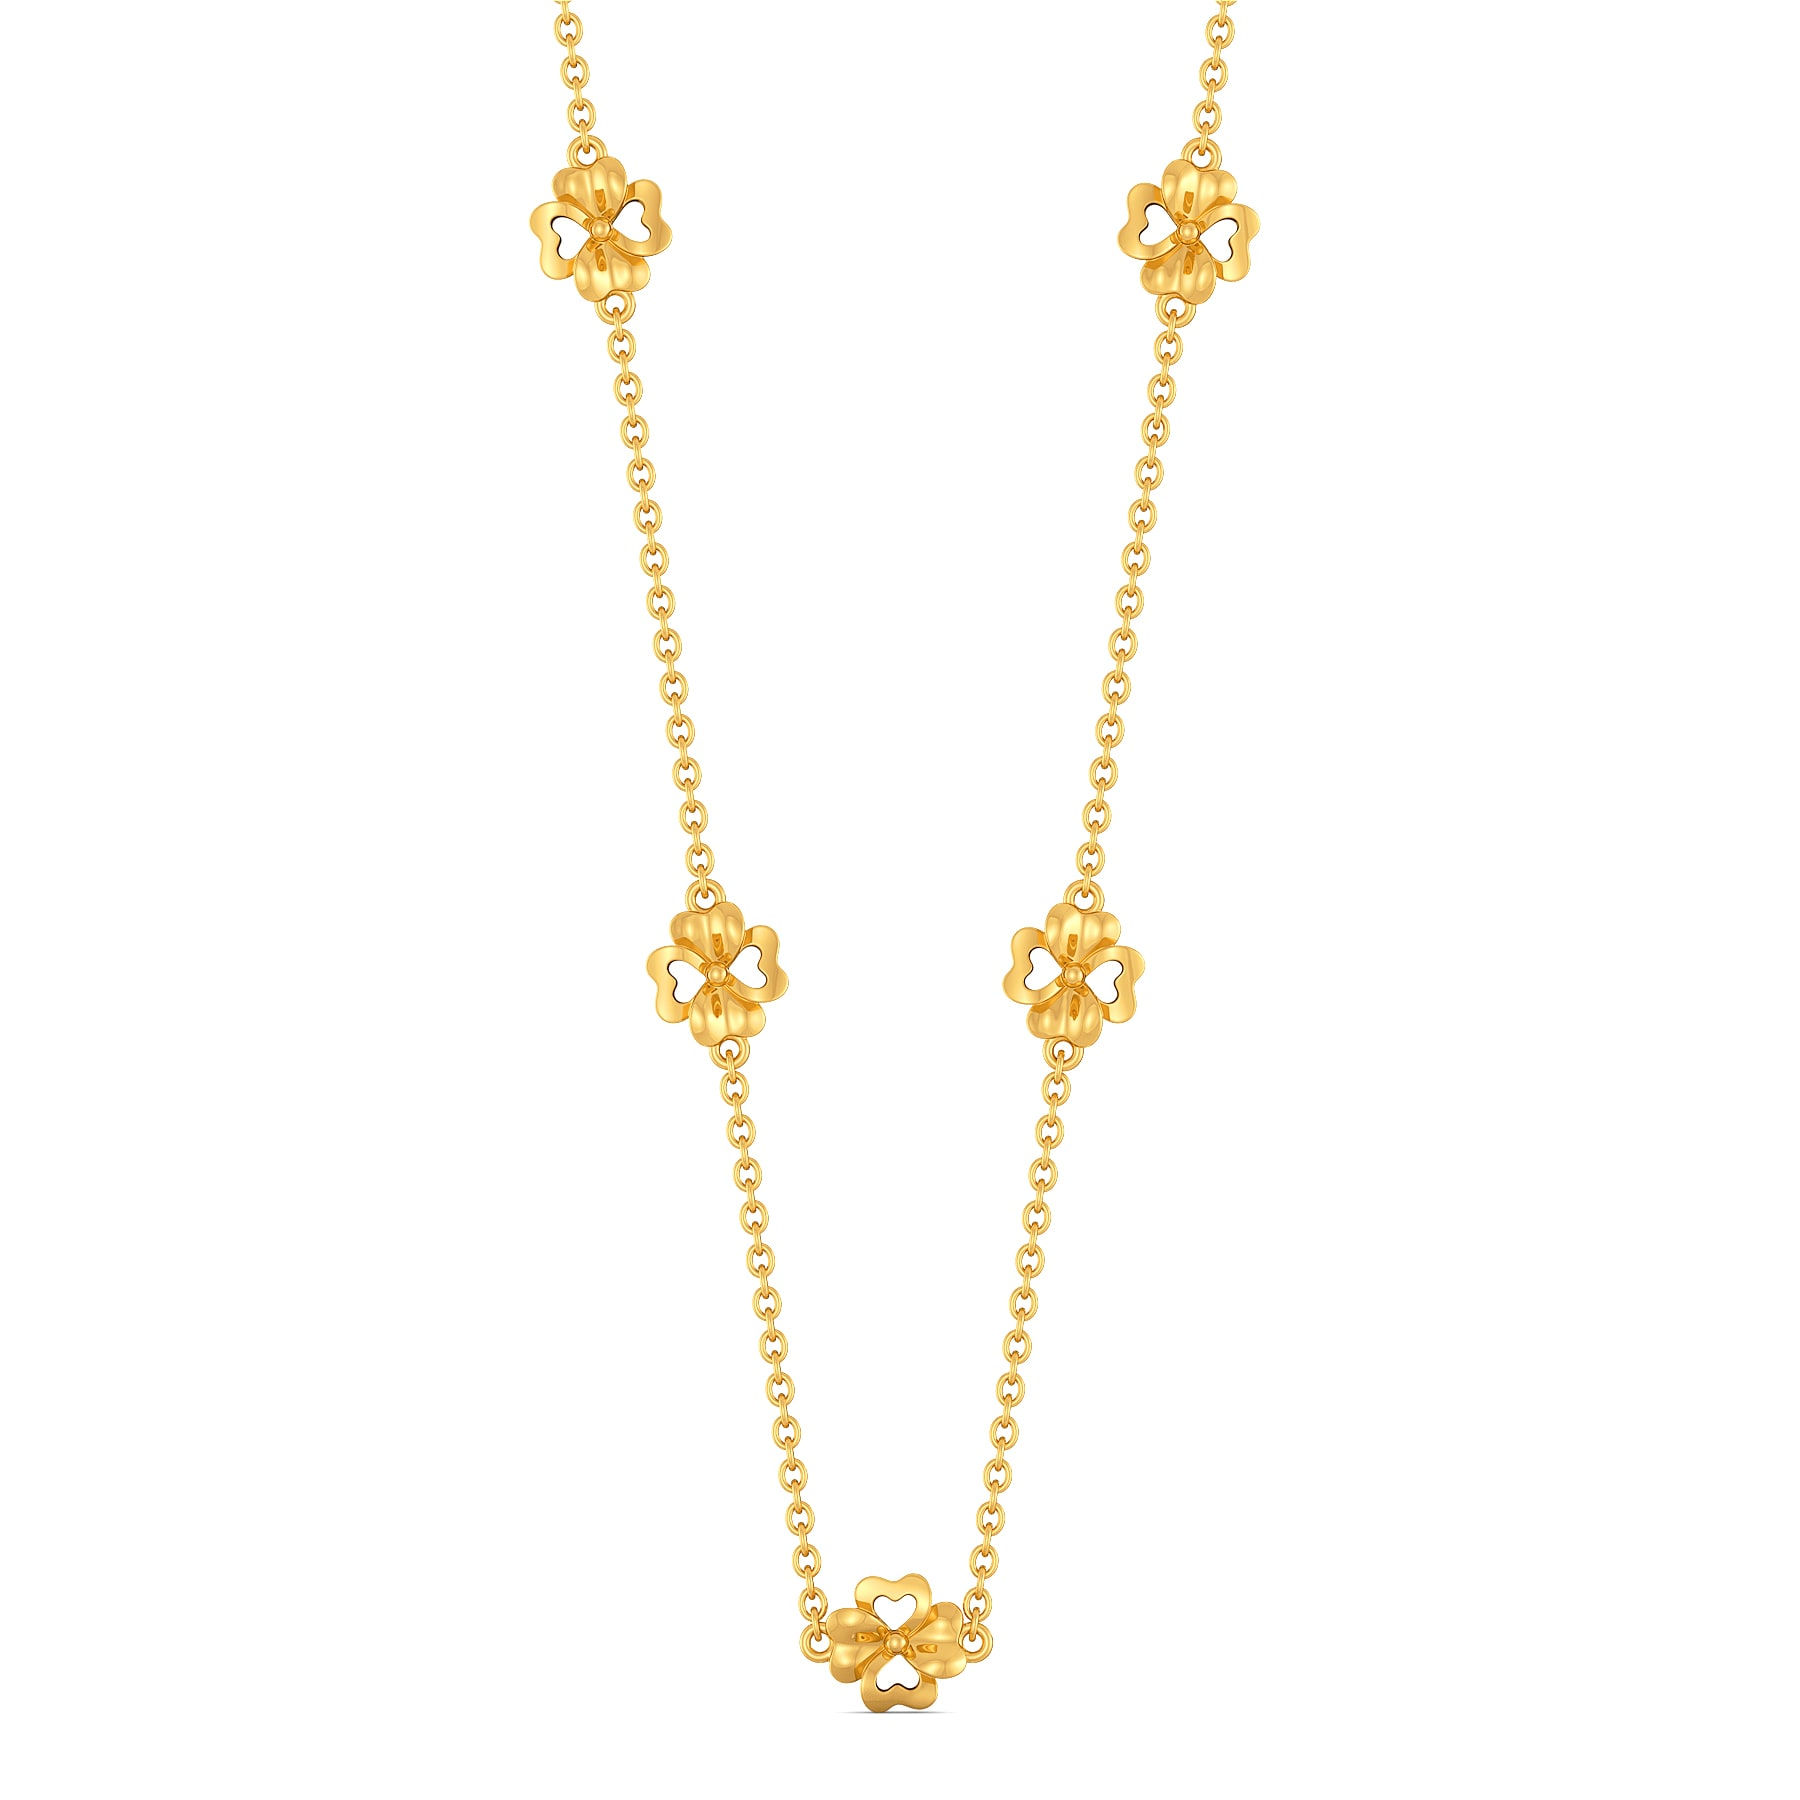 Florally Fabulous Gold Necklaces